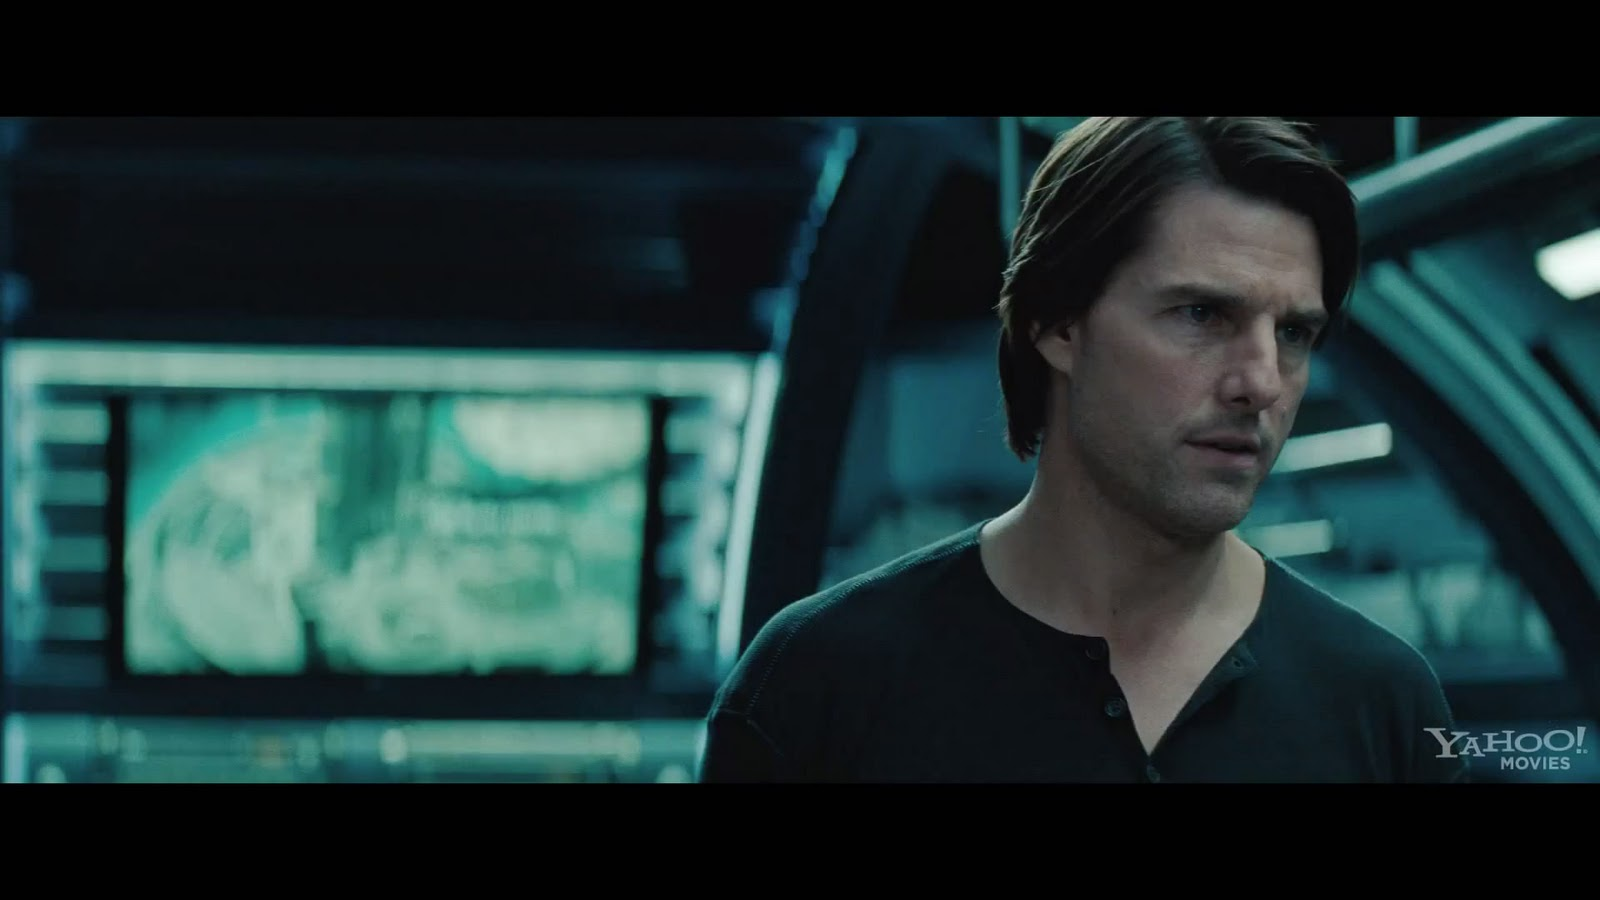 QQ Wallpapers: Mission Impossible 4 Ghost Protocol Wallpapers